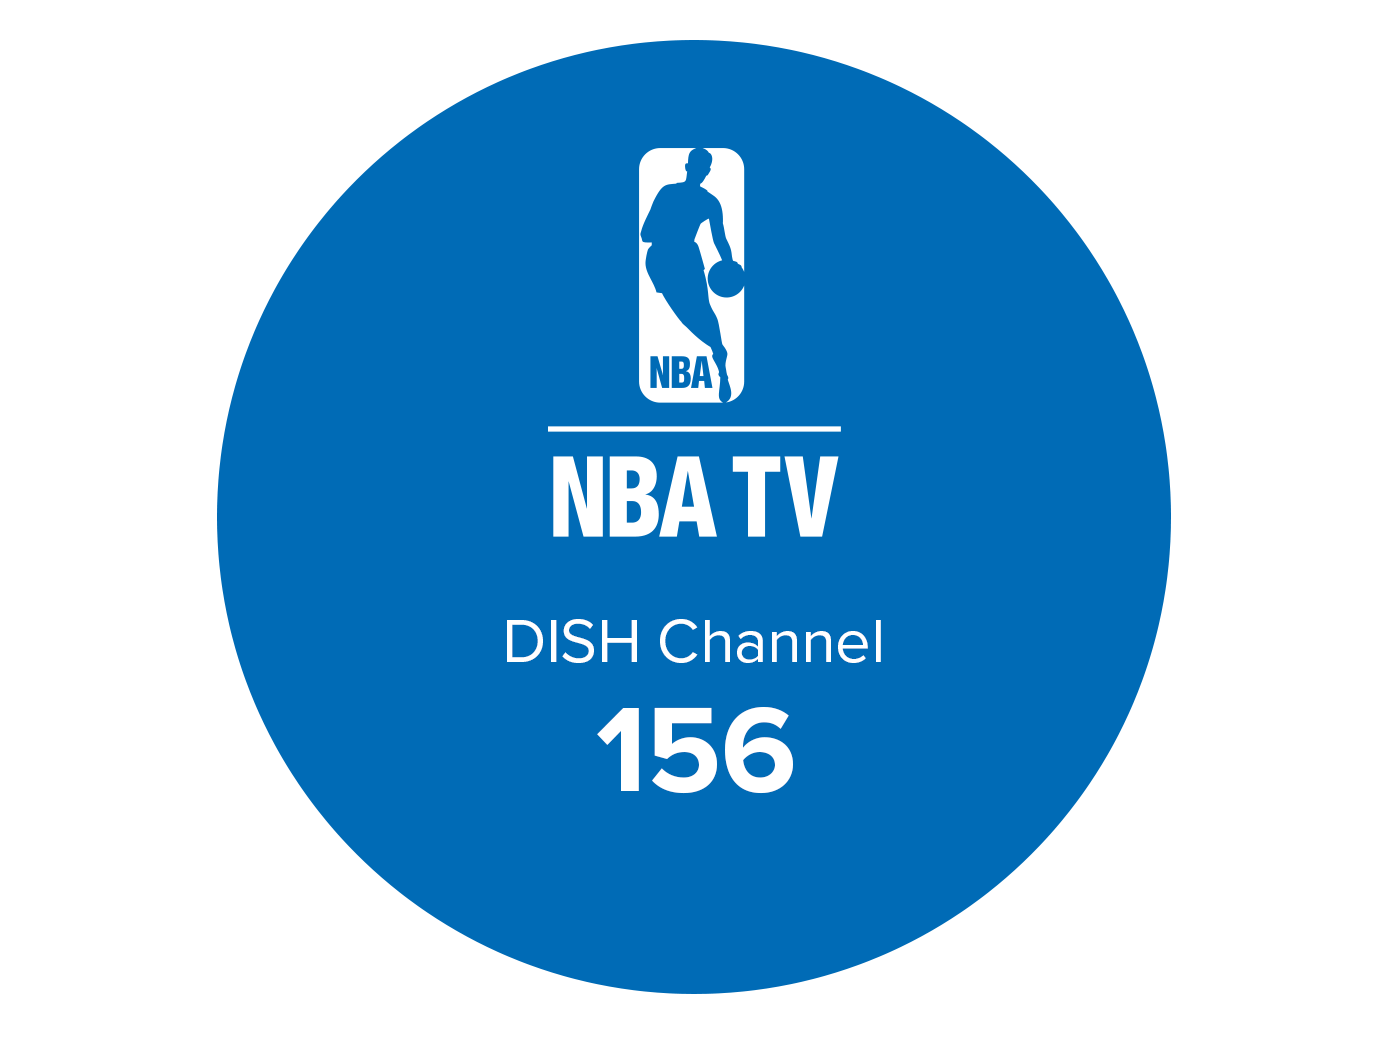 NBA TV channel 156